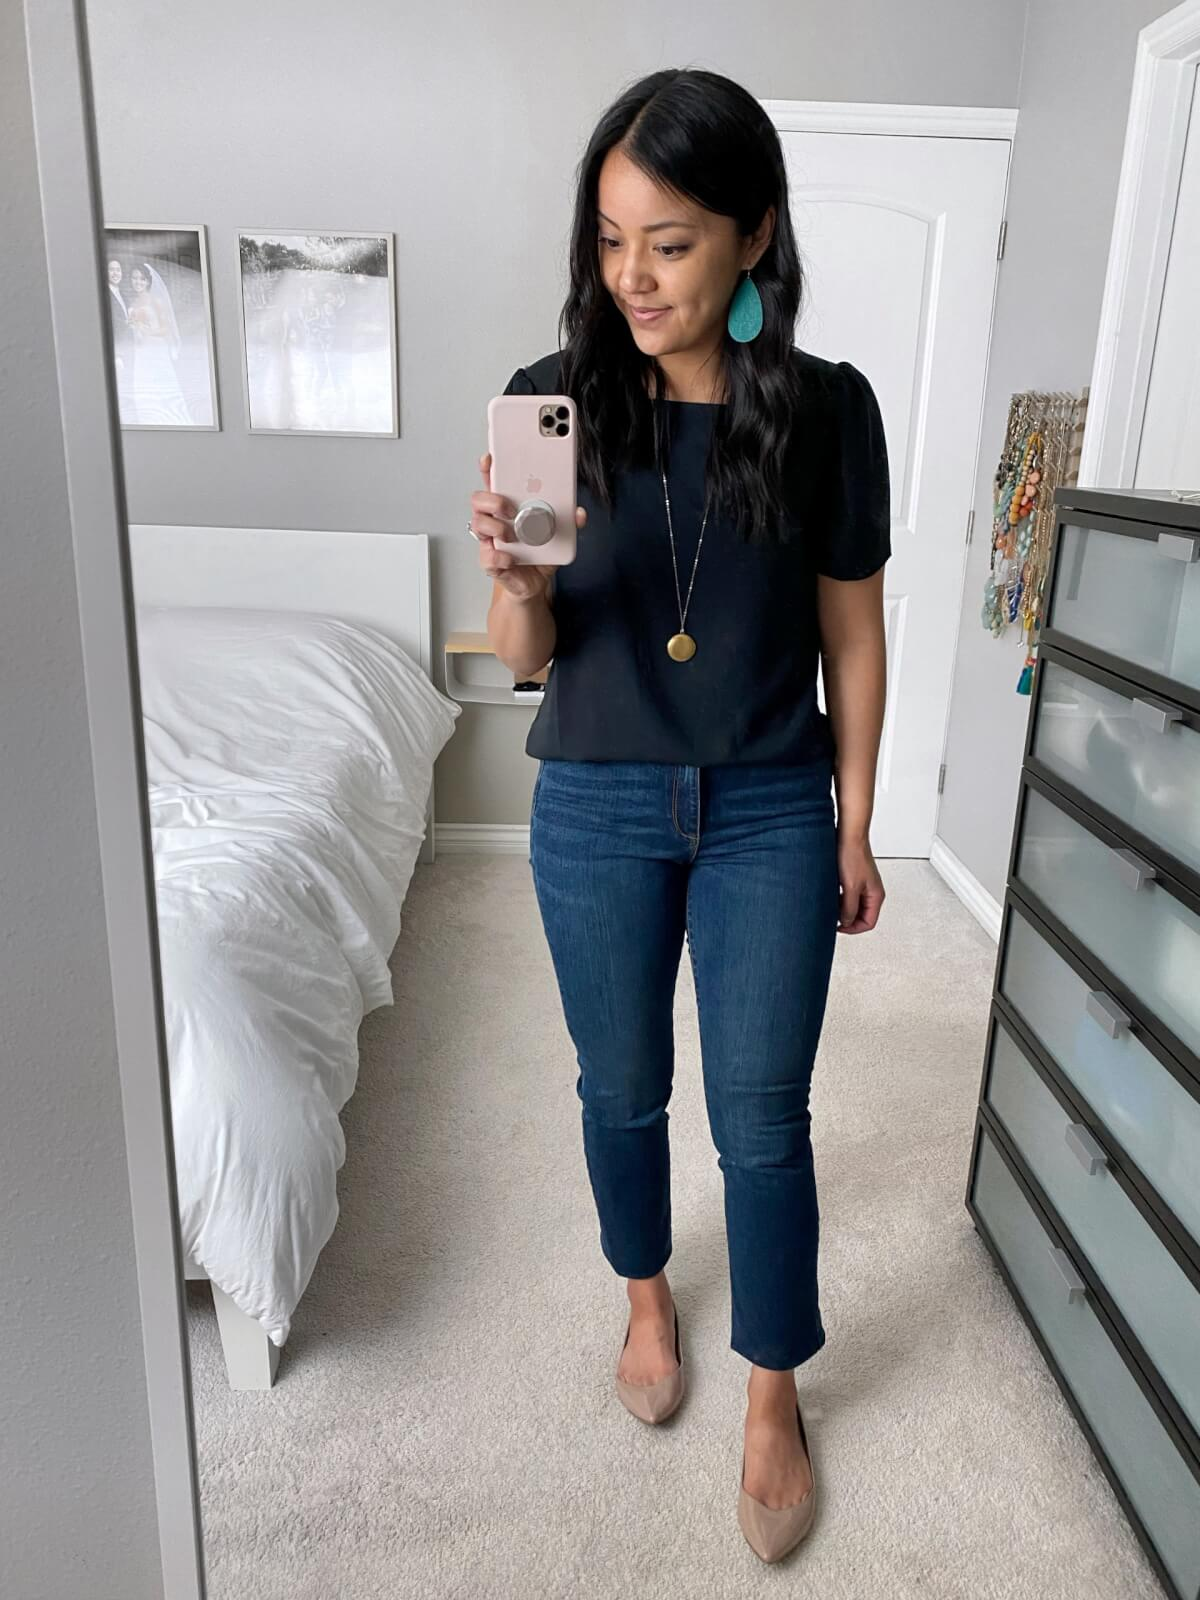 Nicer Casual Outfit: navy square neck top + jeans + nude flats + teal earrings + pendant necklace